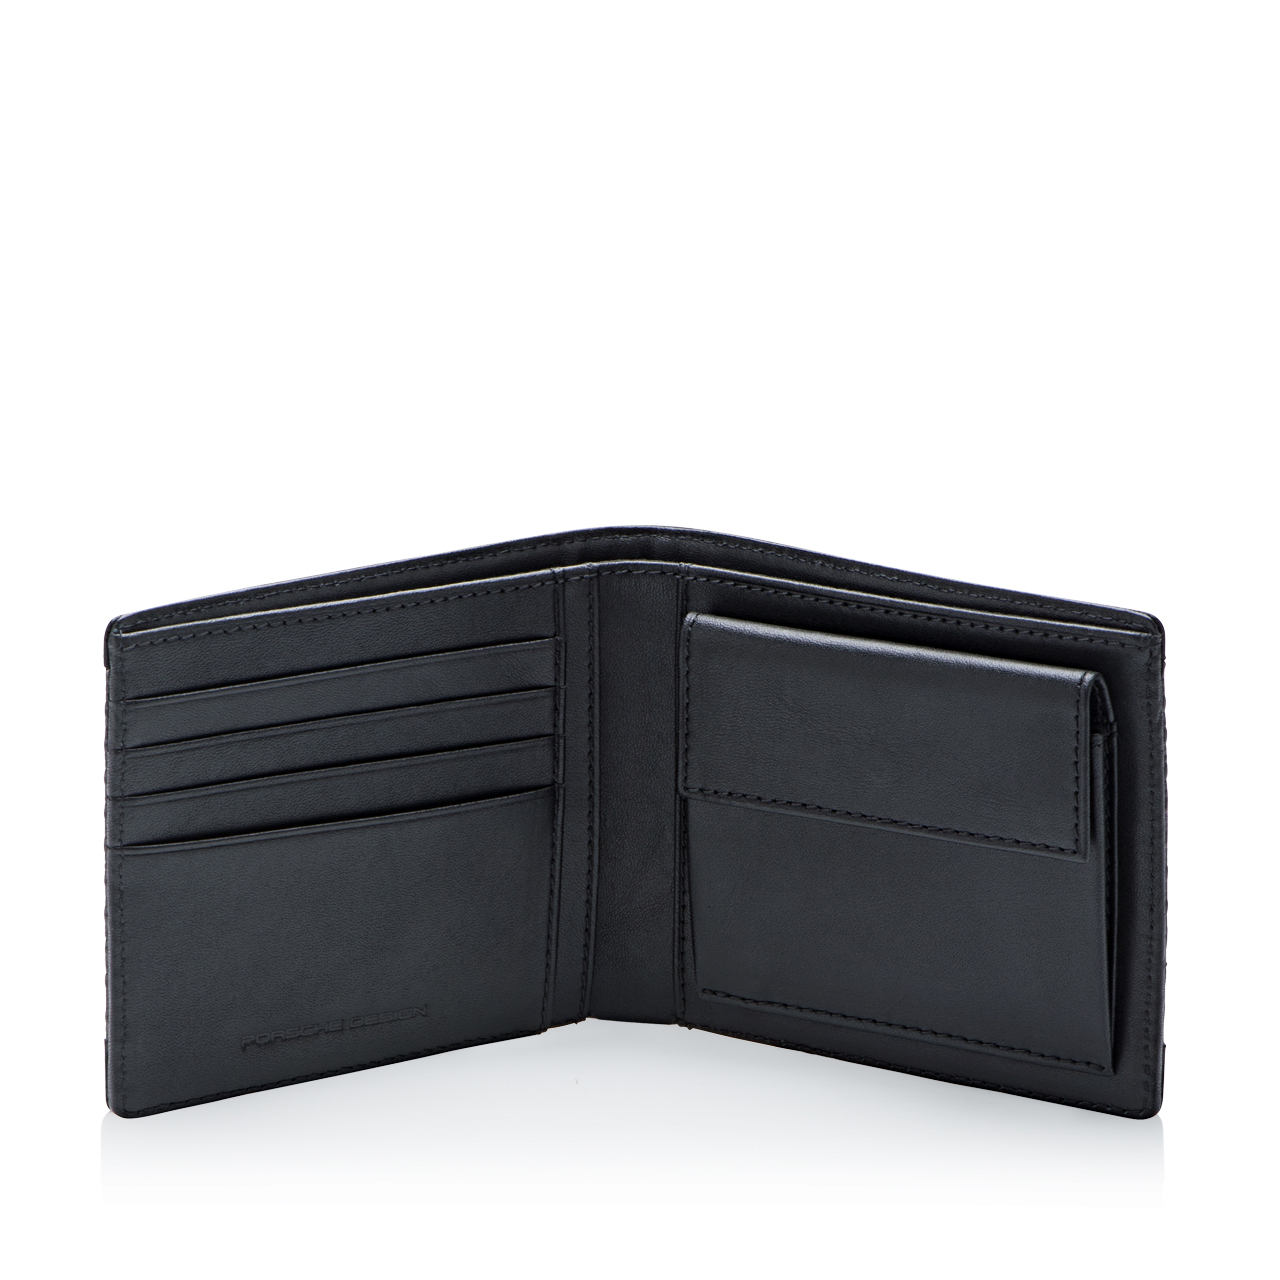 Carbon H5 Billfold